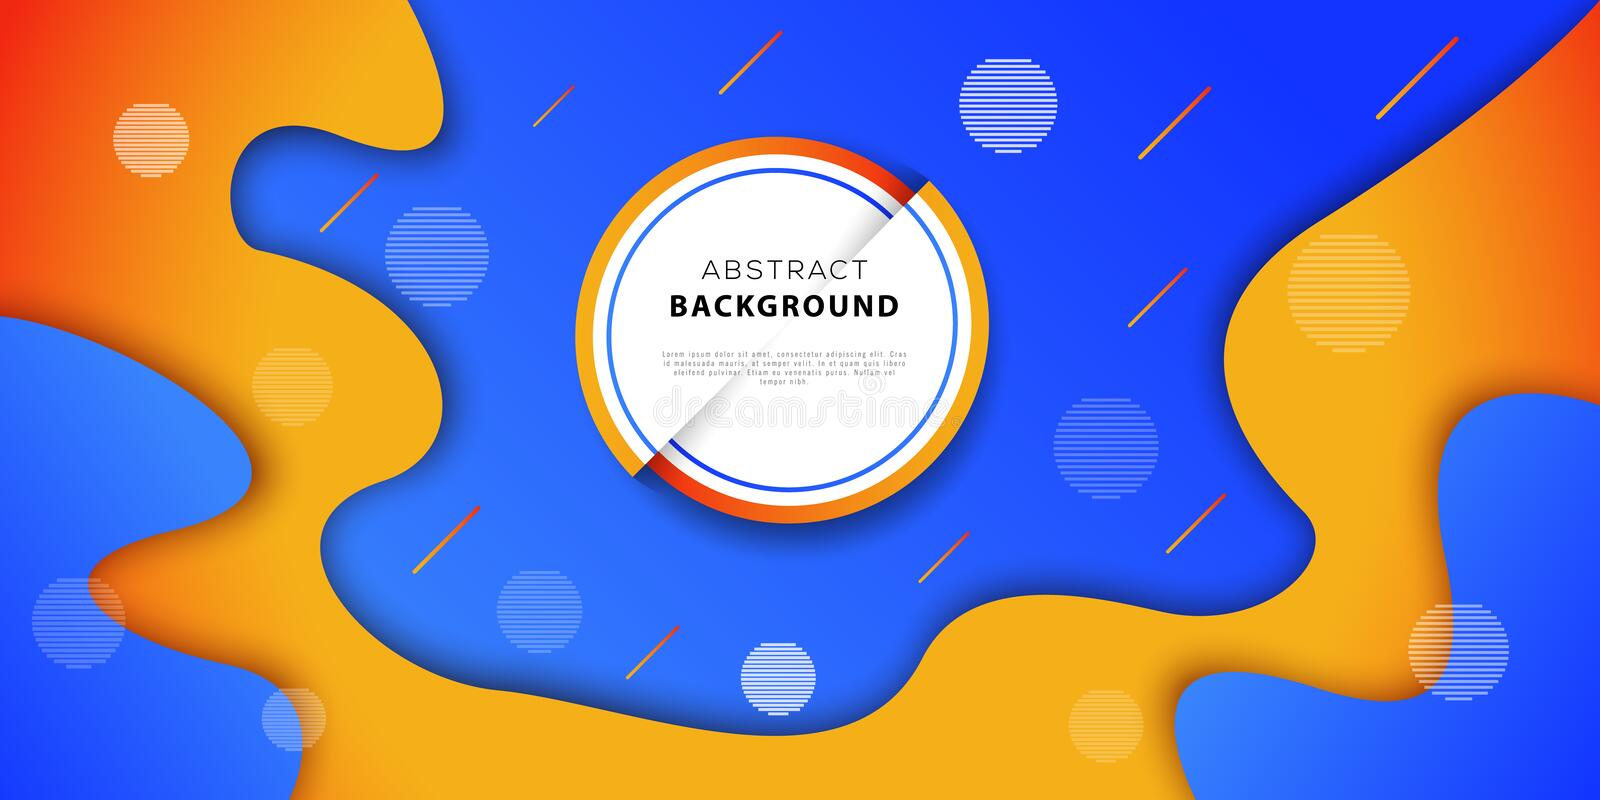 Abstract geometric background with blue and orange colors. Futuristic poster design with fluid gradient shapes. royalty free illustration